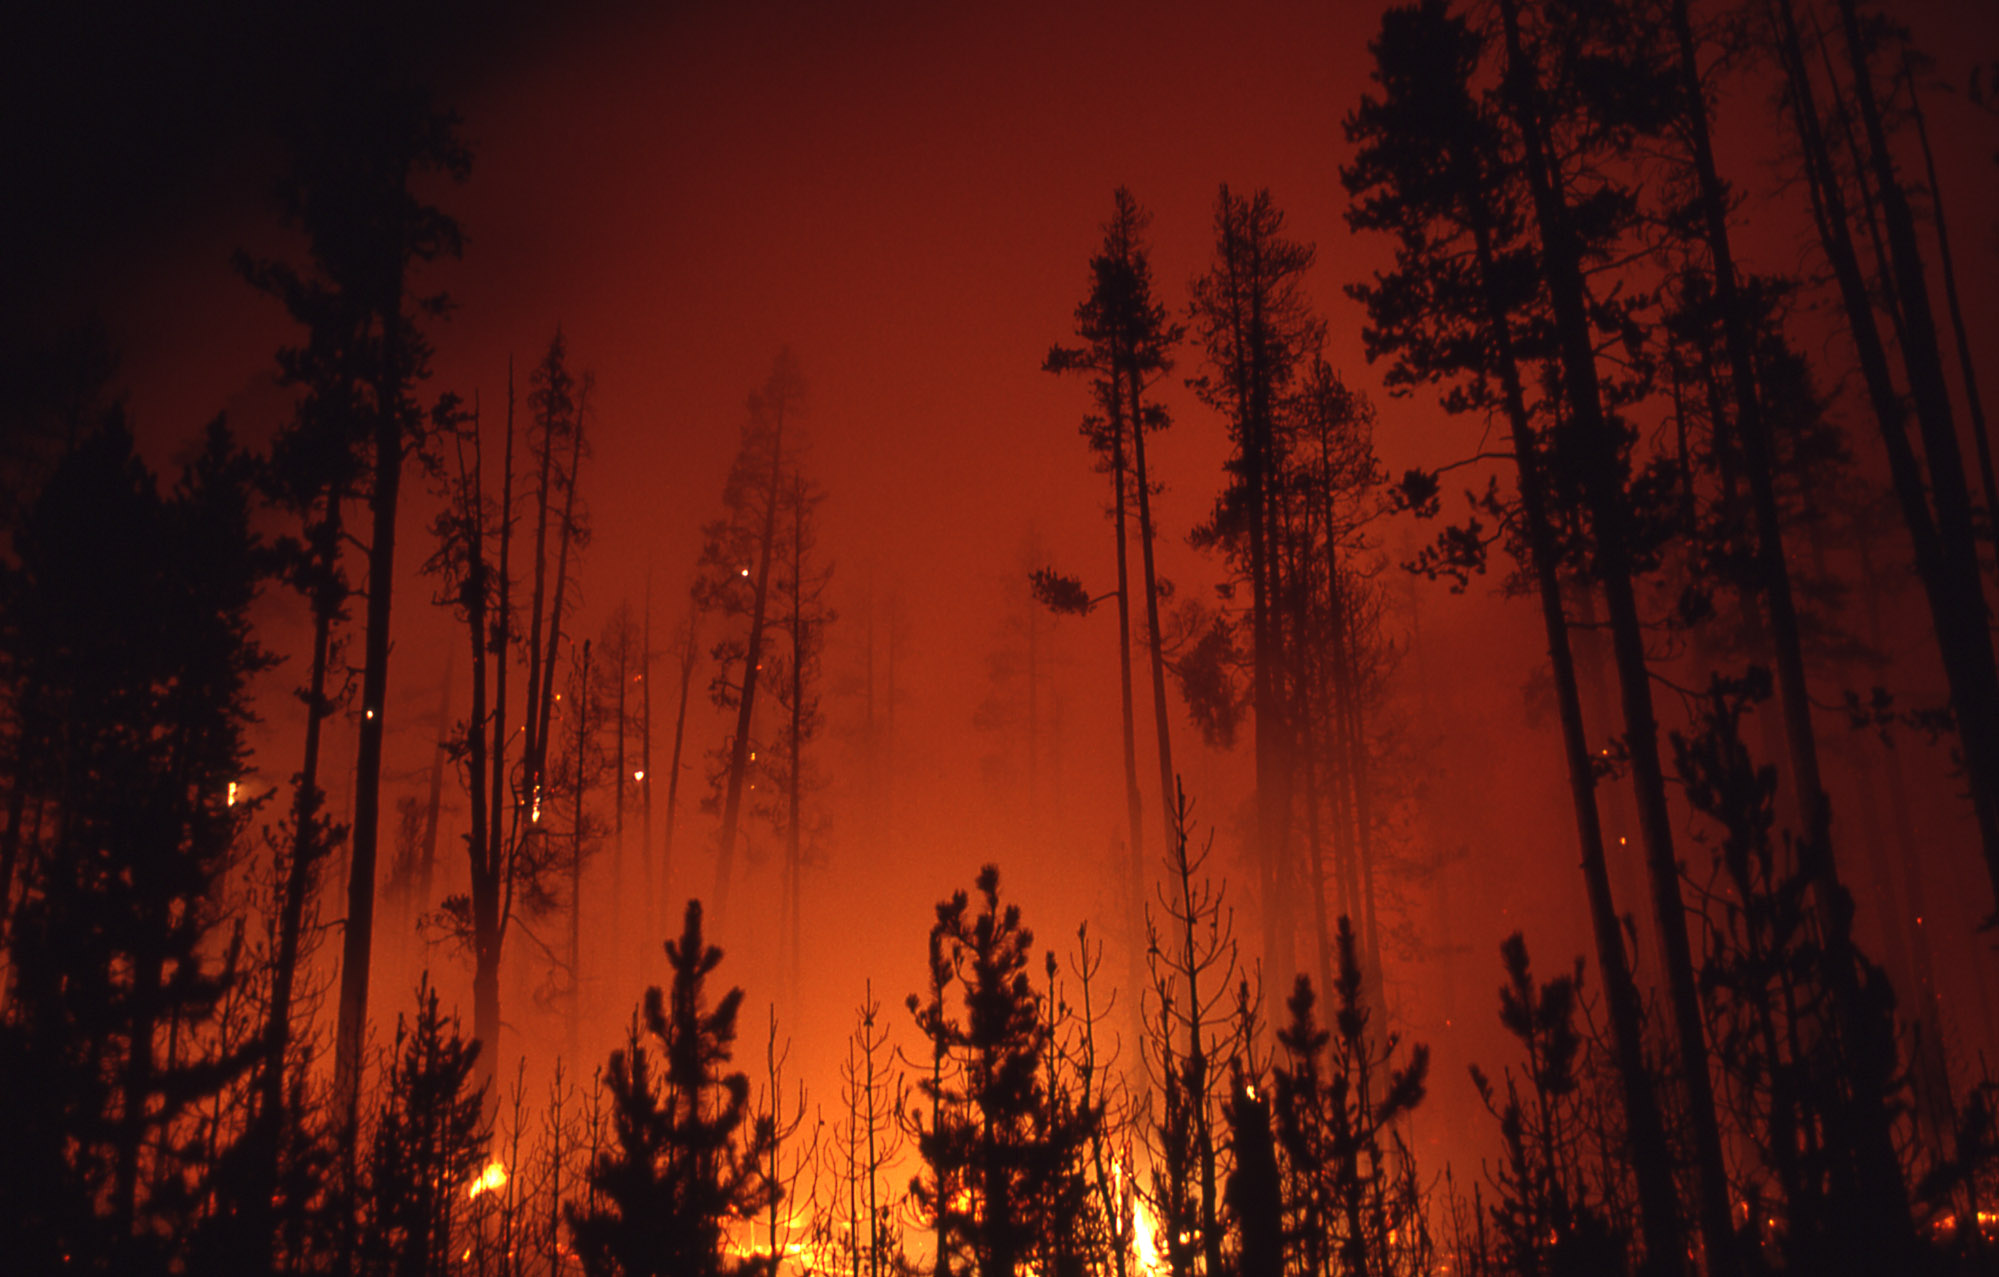 Nighttime glow of ground fire in lodgepole forest near Firehole; Jeff Henry; 1988